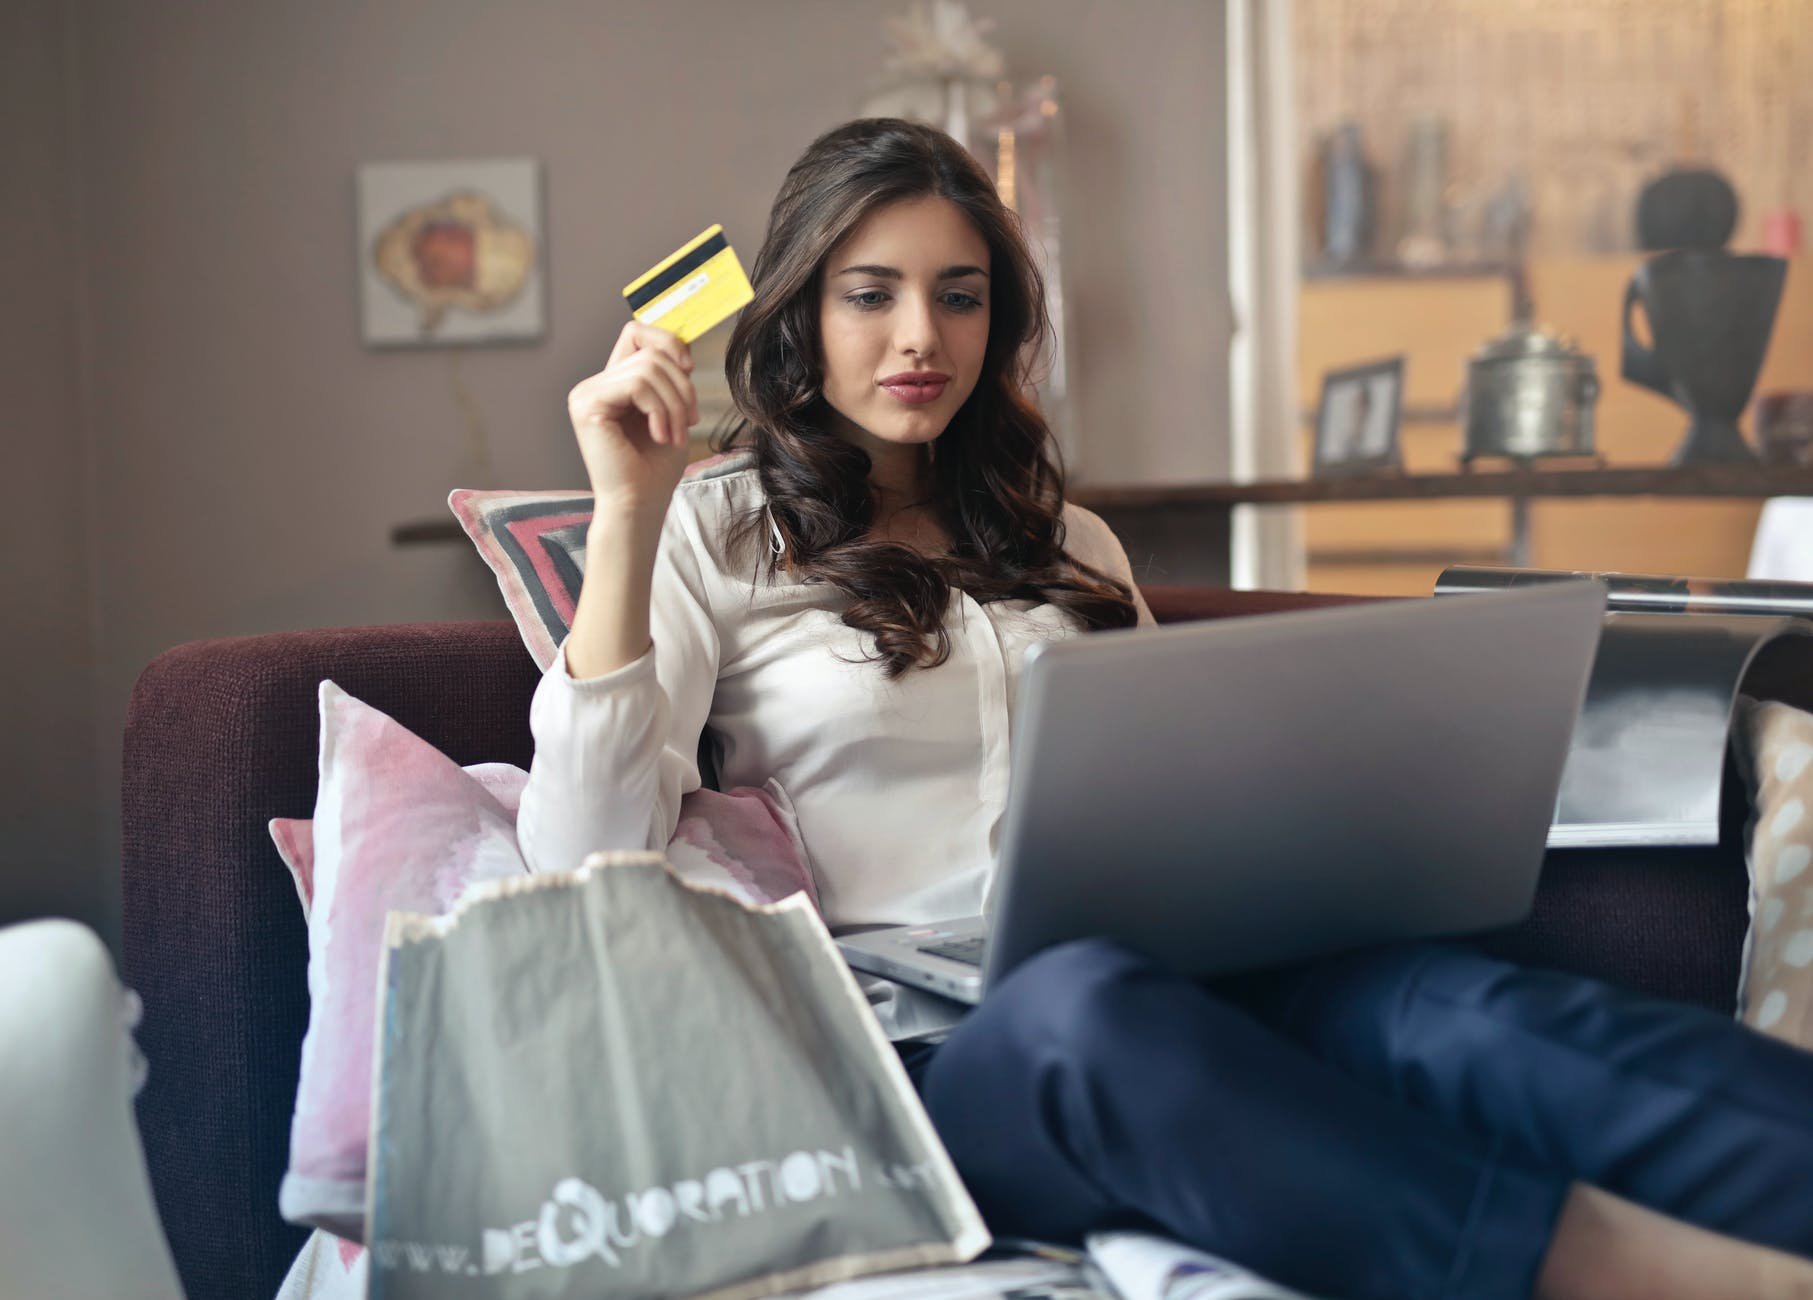 a lady holding a credit card